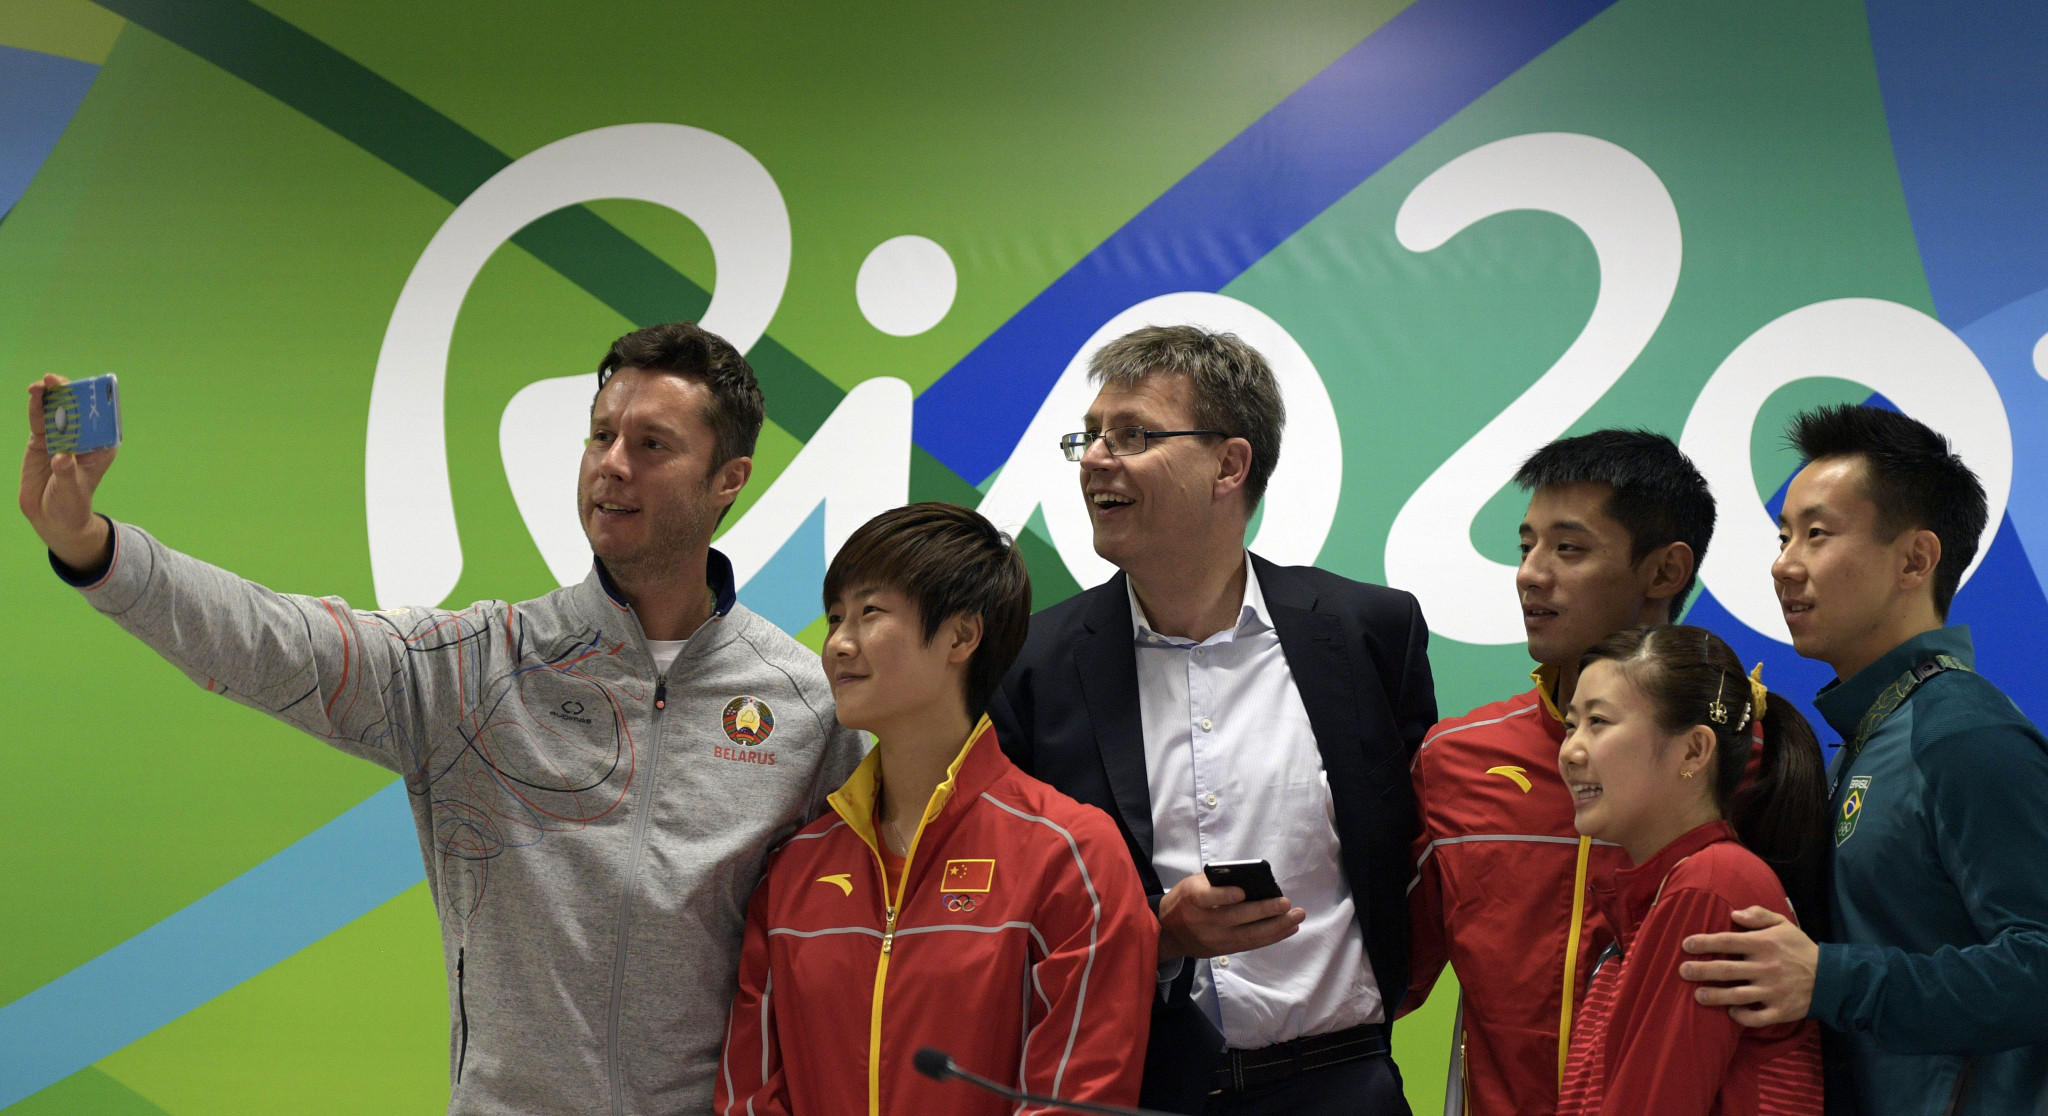 Thomas Weikert, centre, poses with leading table tennis players during Rio 2016 ©Getty Images